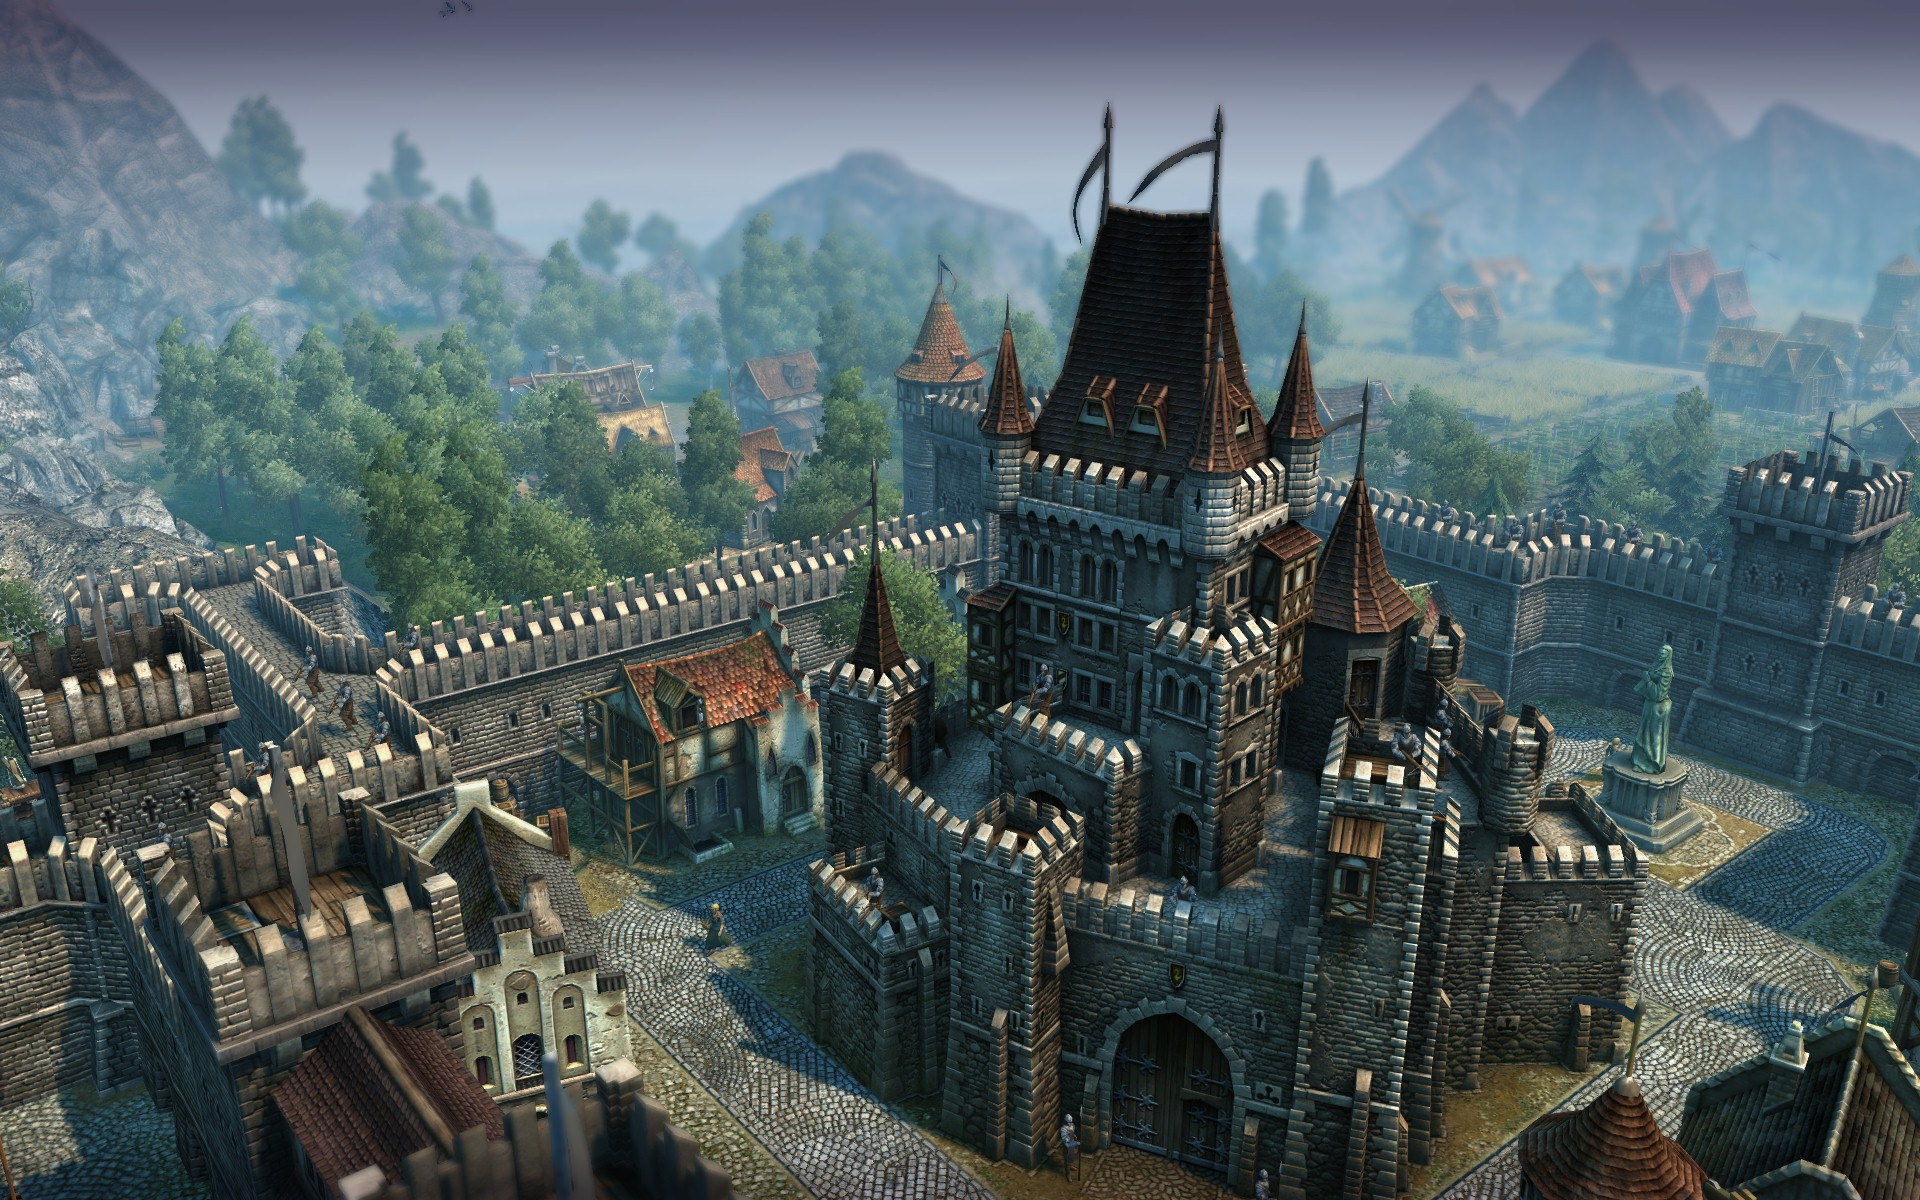 download map warcraft with Video Games Minecraft Castle on Icecrown Citadel In Minecraft Alpha Wip likewise Crafting azeroth wow map v10 released over 2x the as well World Map Typography Wallpaper 3660 together with Showthread besides Video games minecraft castle.